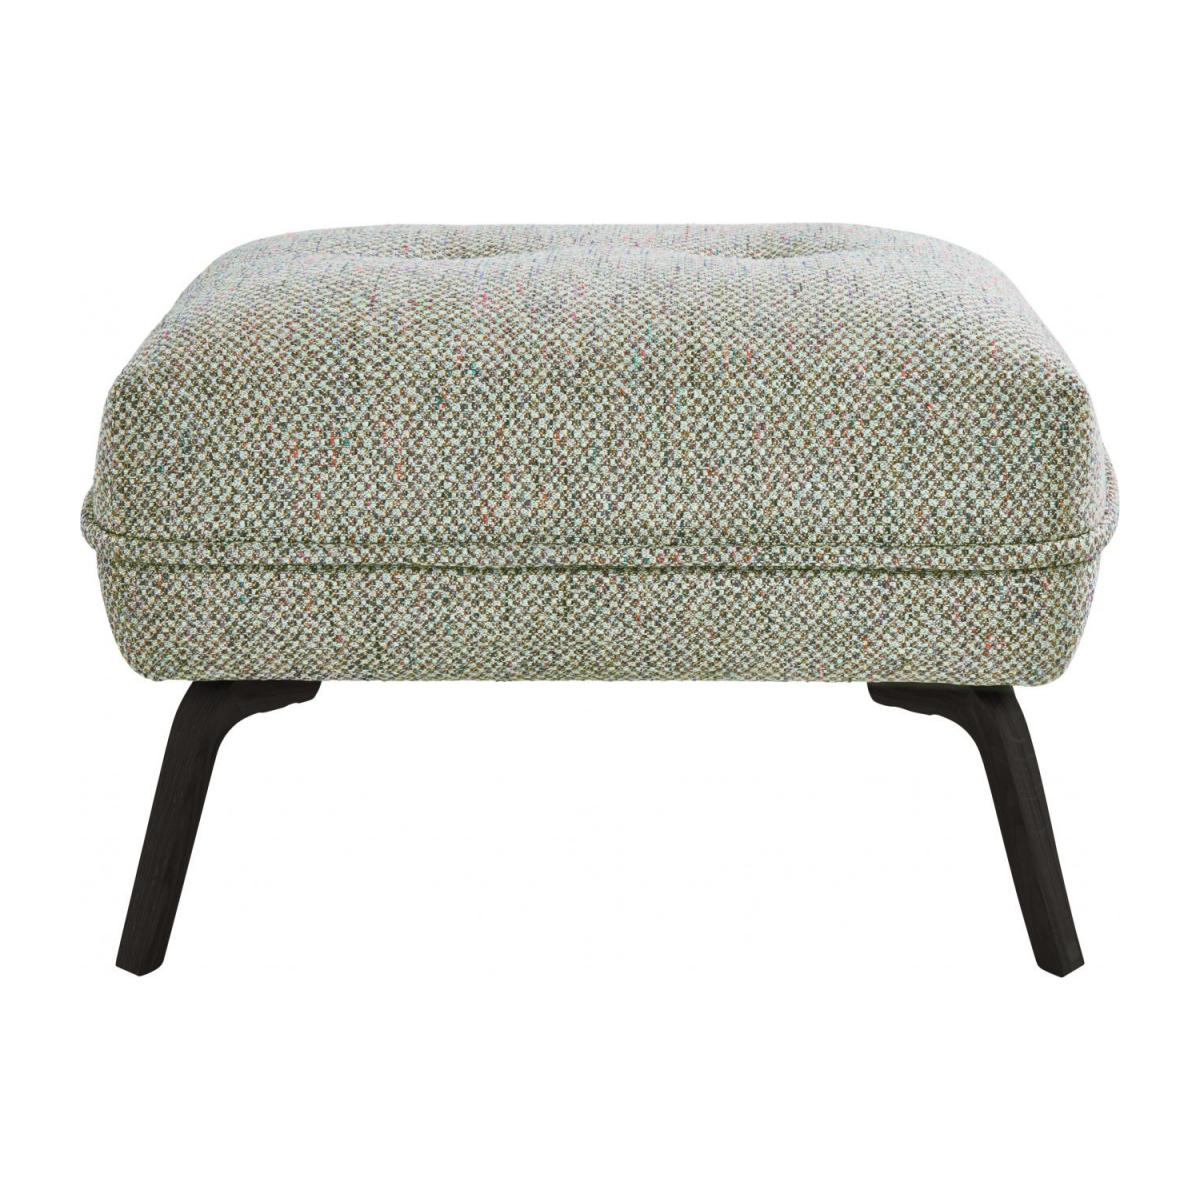 Footstool in Bellagio fabric, organic green and dark legs n°2